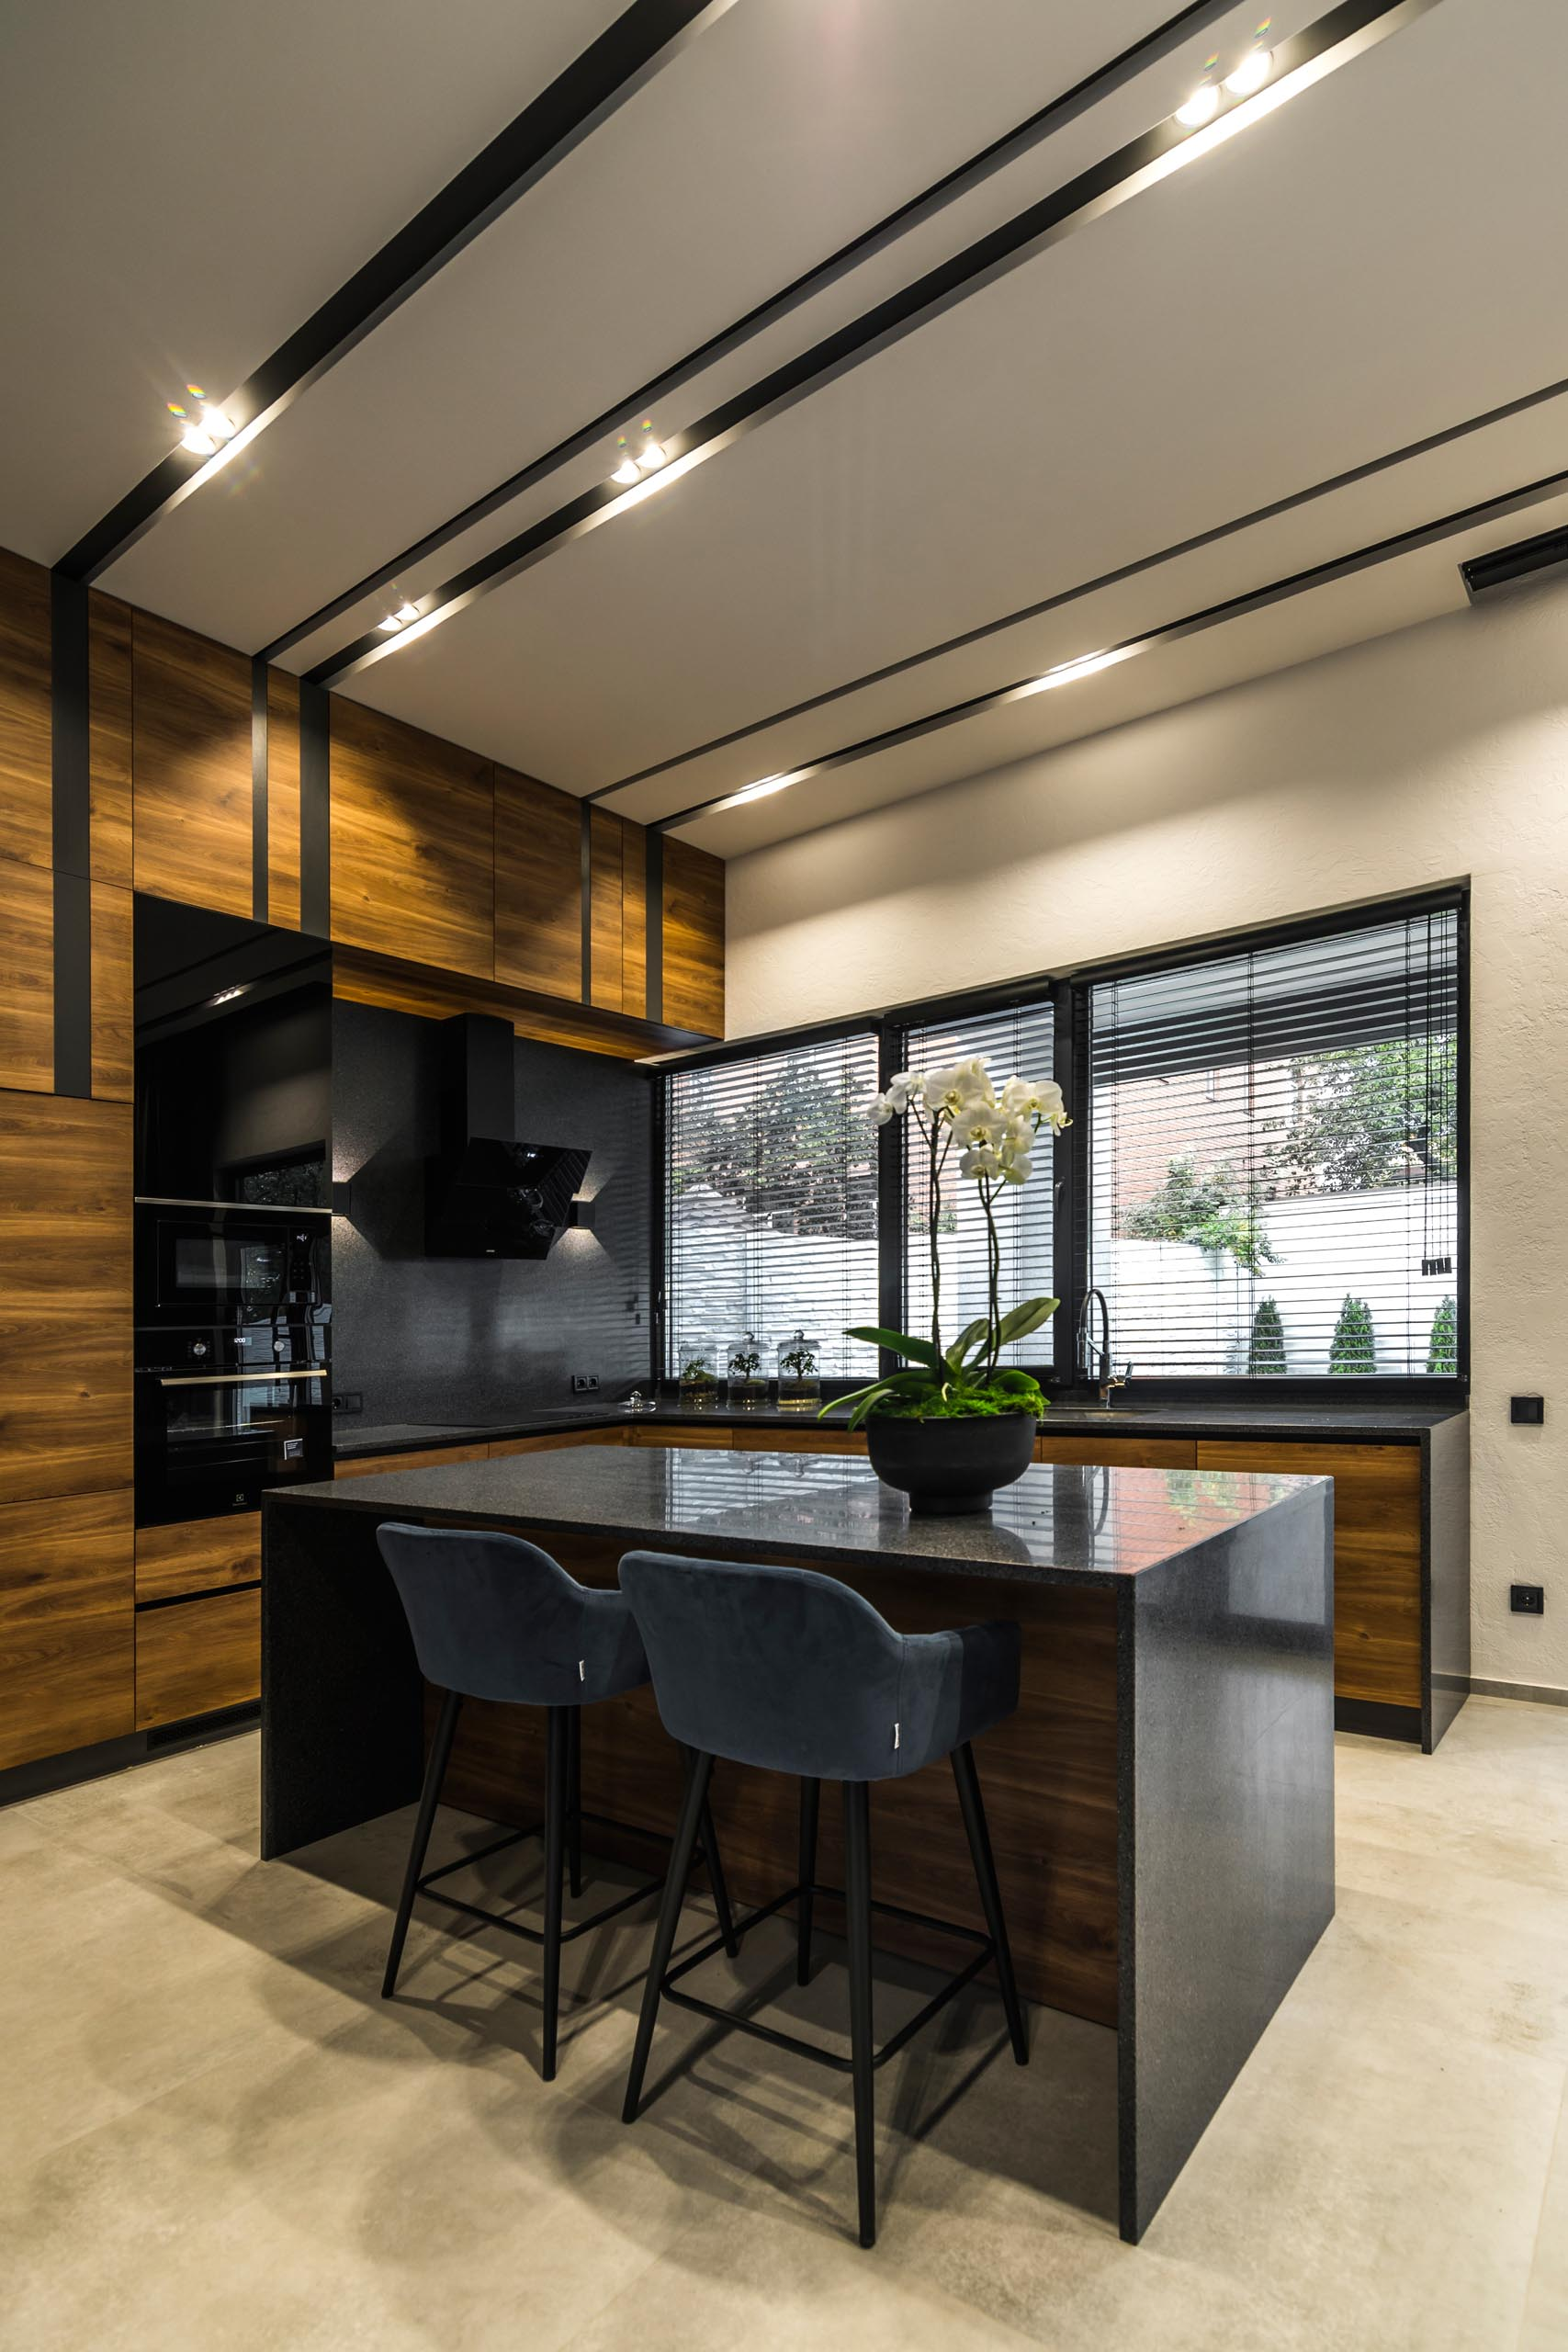 A modern gray, black, and wood kitchen with island.